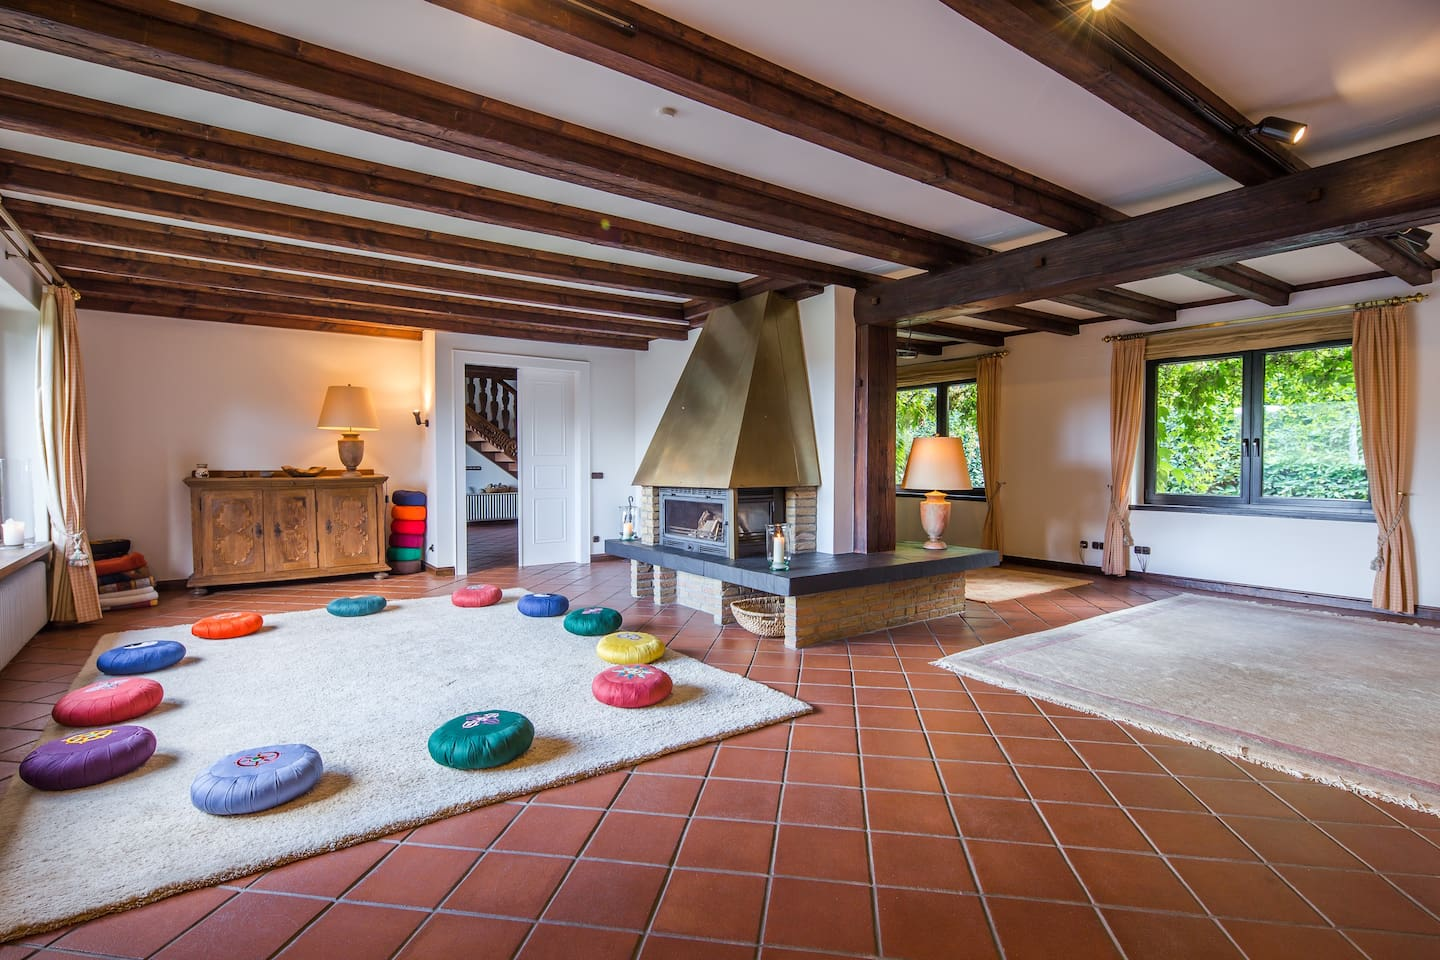 Der Meditationsraum ist das Herz des Hauses. // The meditation room is the heart of the house.